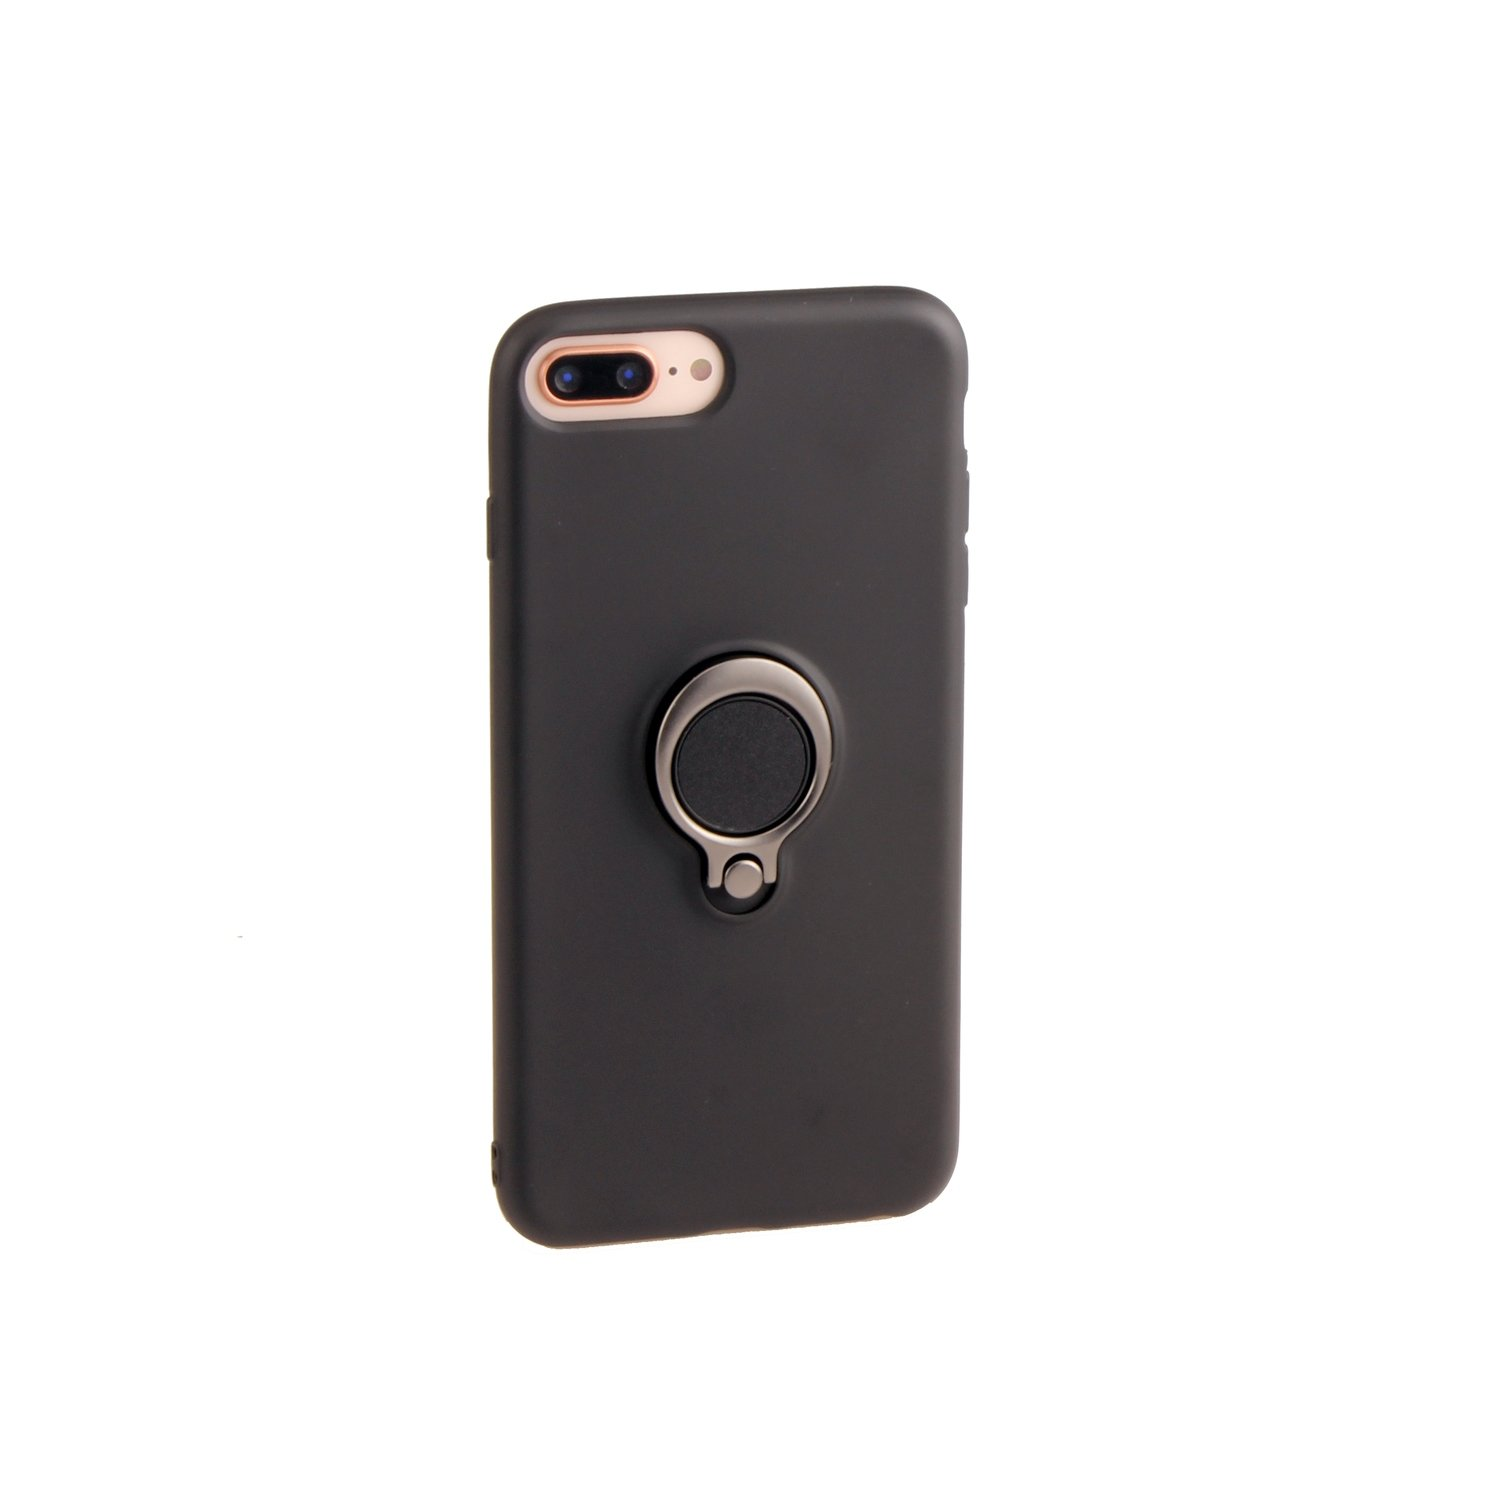 Apple iPhone 5 Jelly Case With Grip